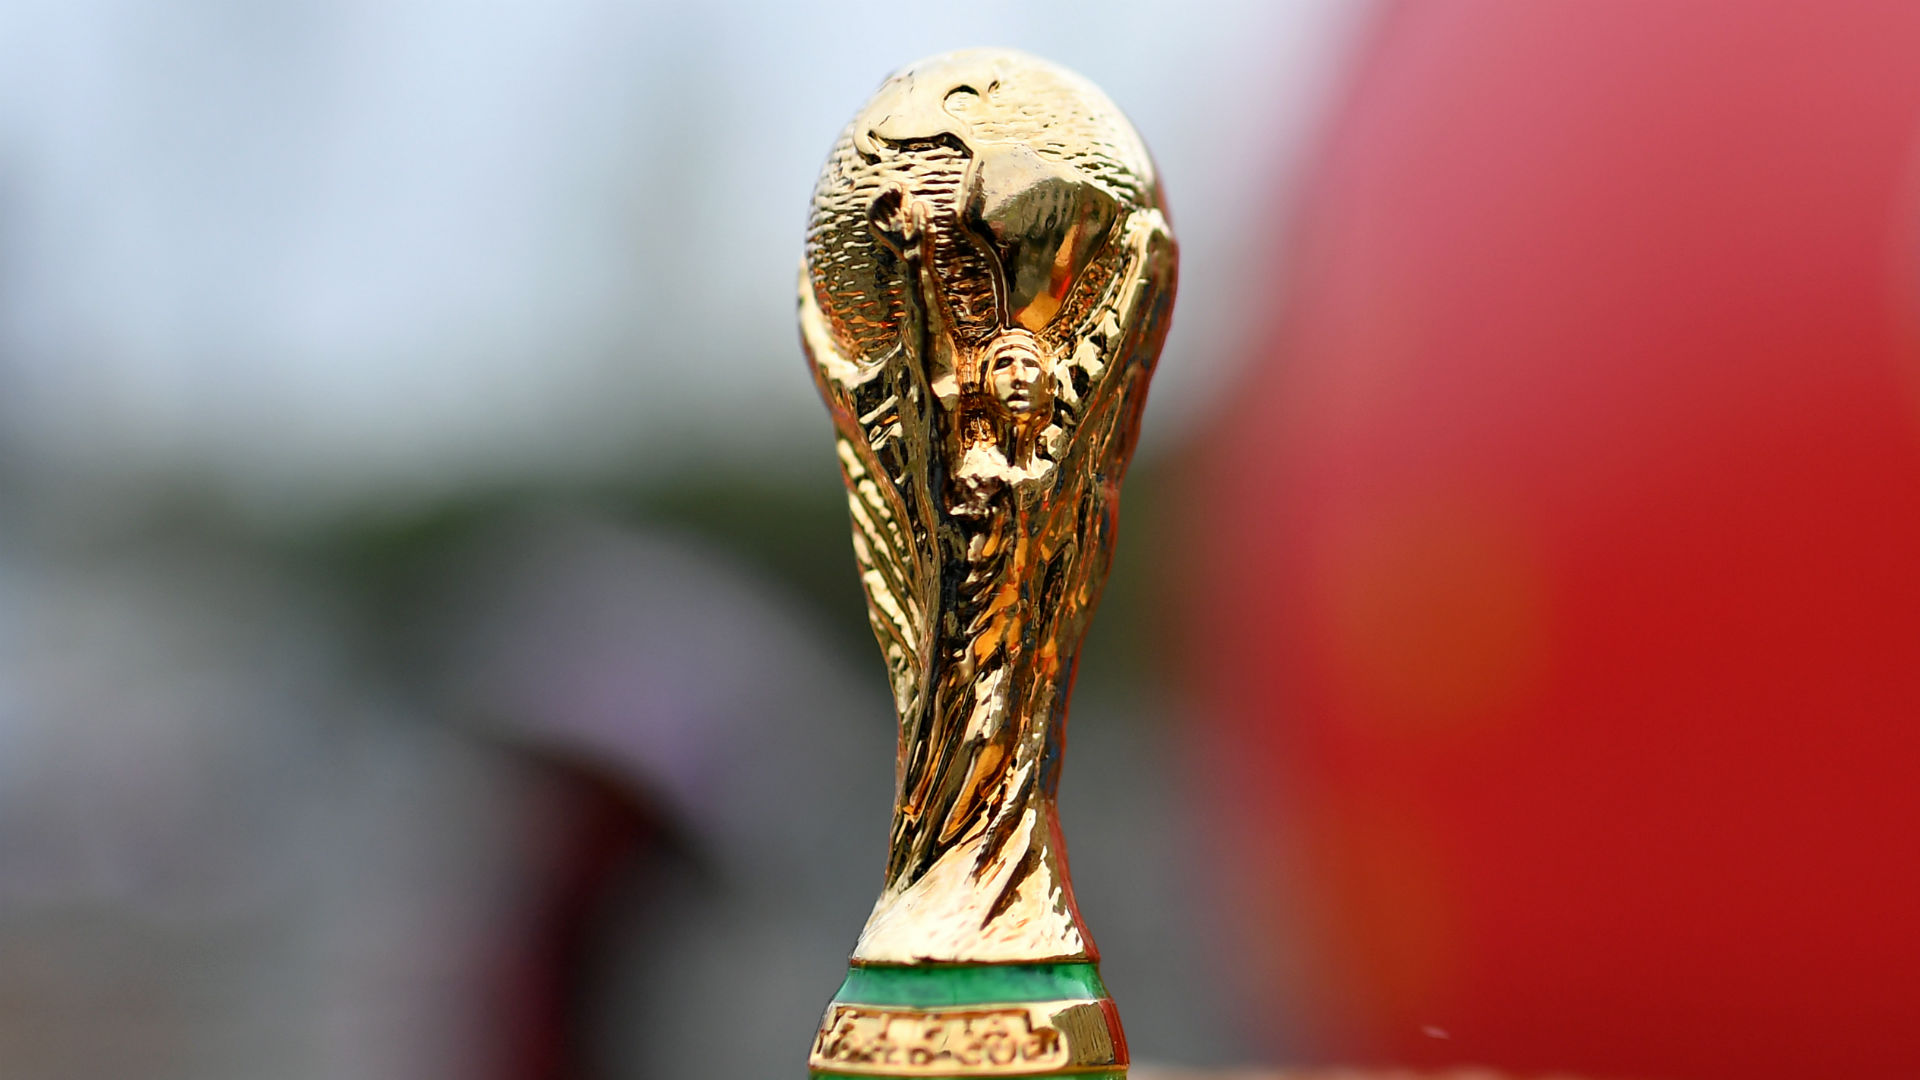 Spain, Portugal consider joint bid for World Cup 2030